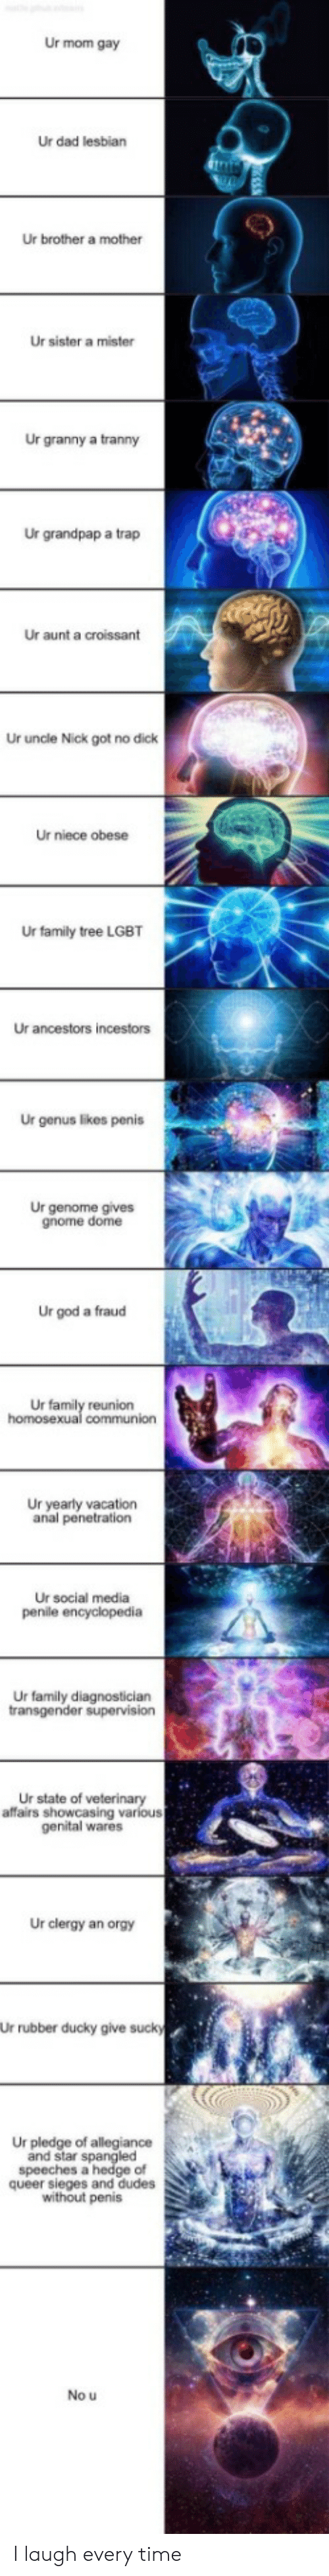 transgender: Ur mom gay  Ur dad lesbian  Ur brother a mother  Ur sister a mister  Ur granny a tranny  Ur grandpap a trap  Ur aunt a croissant  Ur uncle Nick got no dick  Ur niece obese  Ur family tree LGBT  Ur ancestors incestors  Ur genus likes penis  Ur genome gives  gnome dome  Ur god a fraud  Ur family reunion  homosexual communion  Ur yearly vacation  anal penetration  Ur social media  penile encyclopedia  Ur family diagnostician  transgender supervision  Ur state of veterinary  affairs showcasing various  genital wares  Ur clergy an orgy  Ur rubber ducky give sucky  Ur pledge of allegiance  and star spangled  speeches a hedge of  queer sieges and dudes  without penis  No u I laugh every time